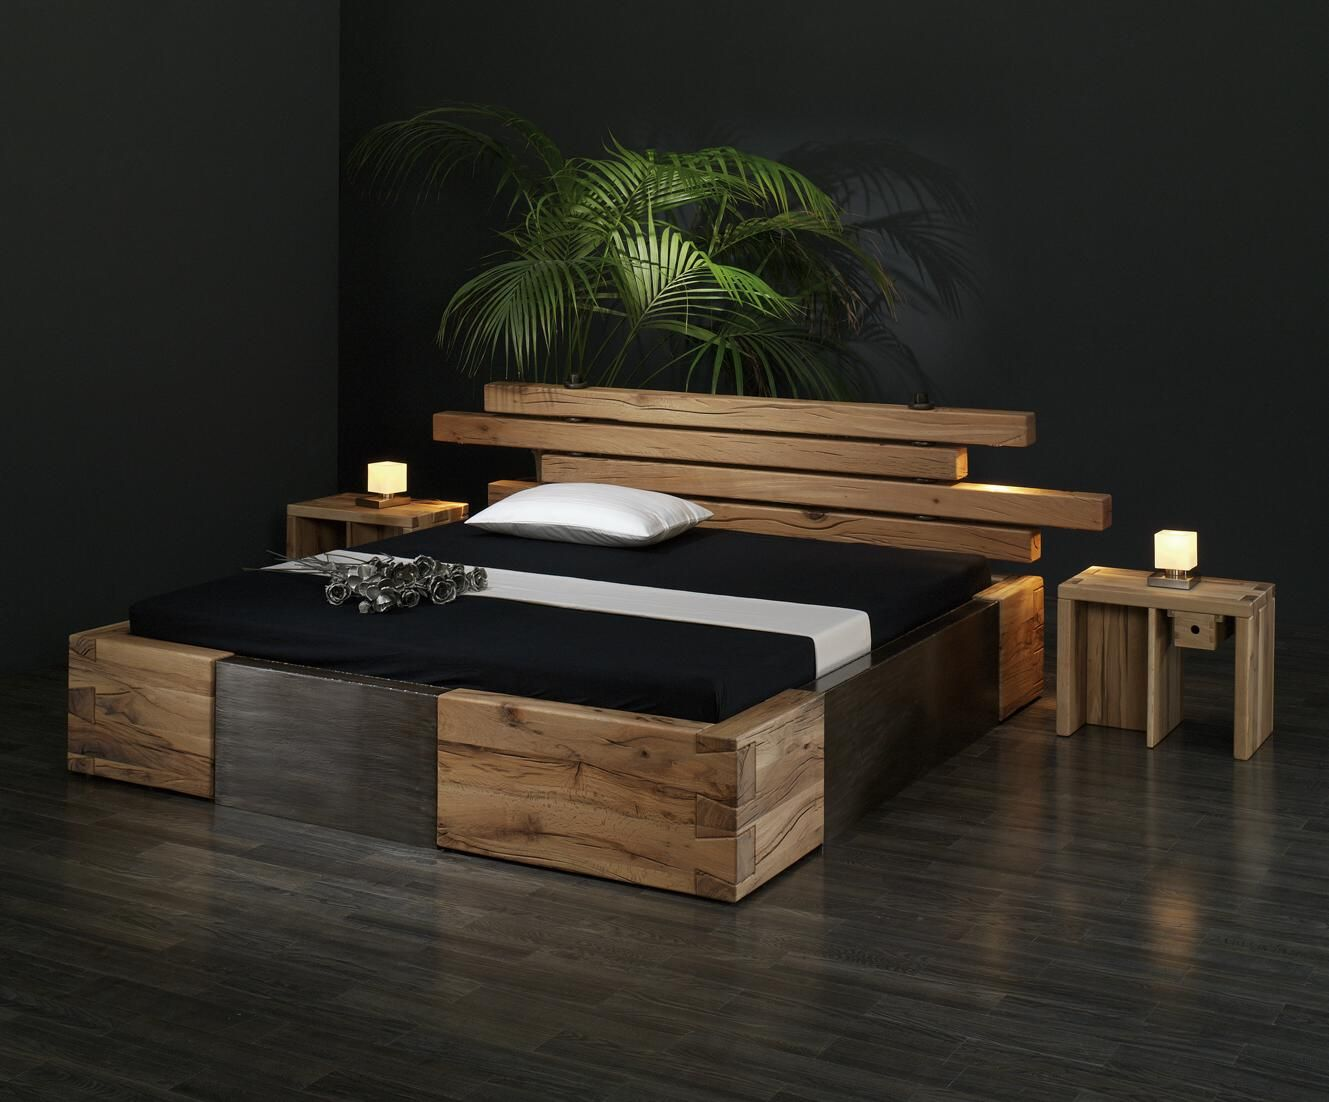 holz bett design - Google Search | Betten | Pinterest | Bett ...